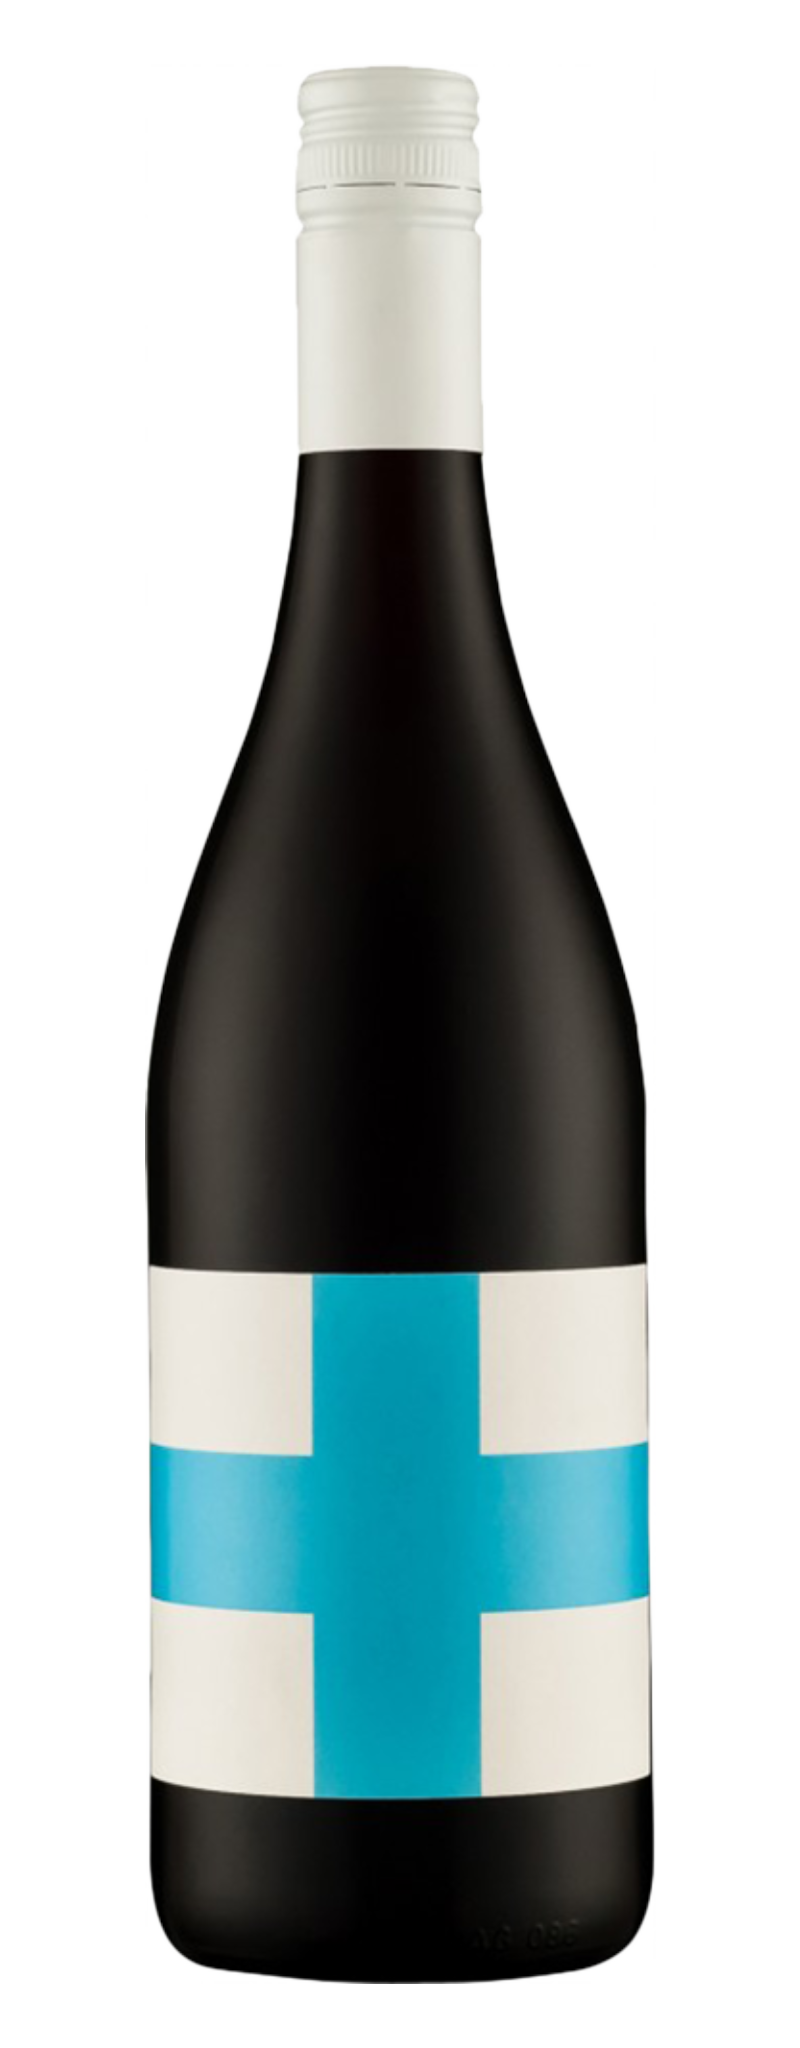 Save Our Souls Yarra Valley Pinot Noir - arrival 15/11  - 750ml